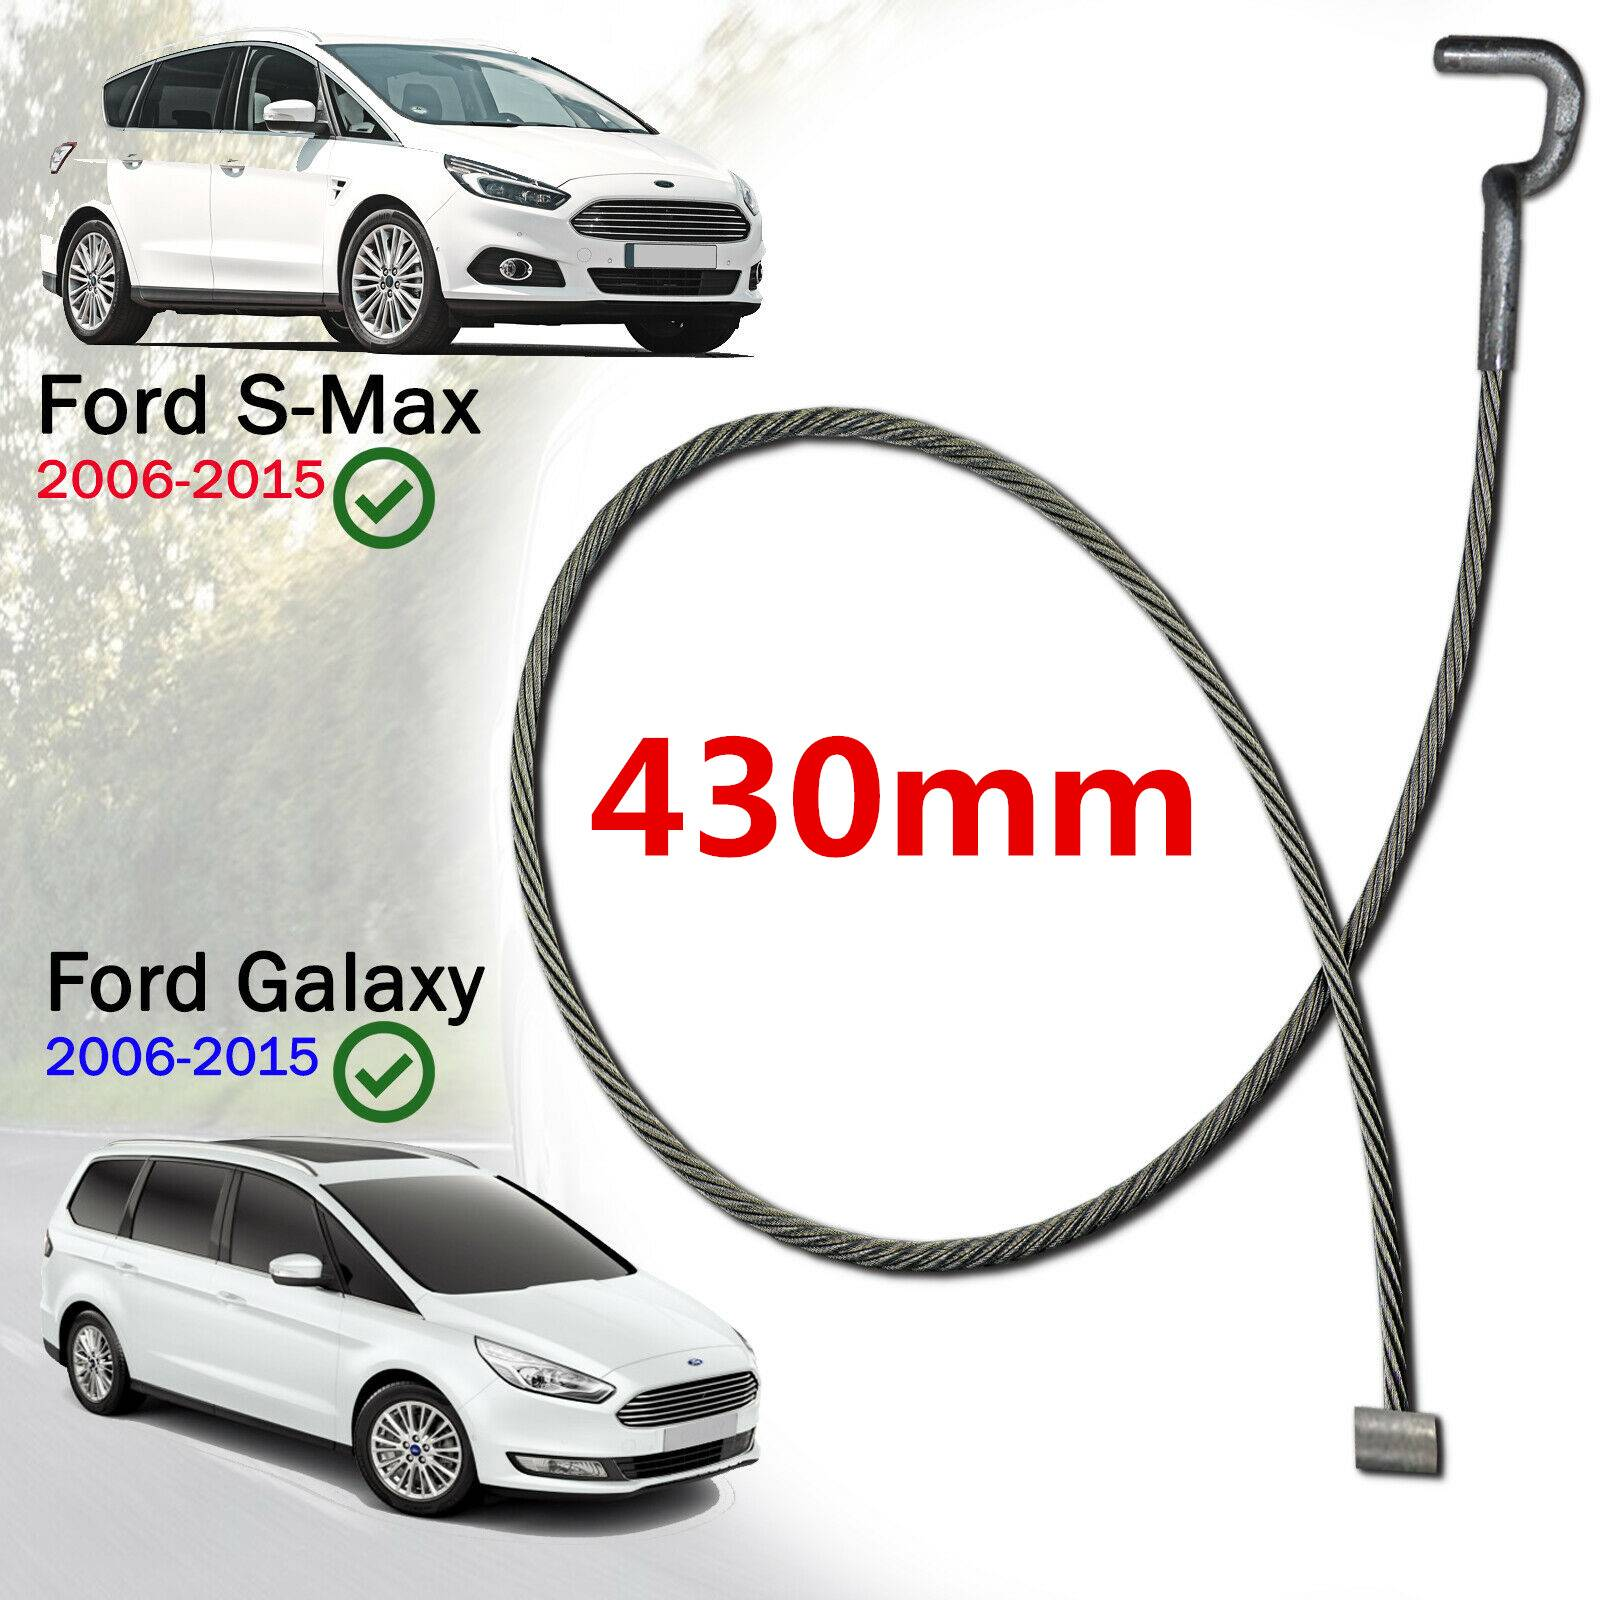 Handbrake-Handle/lever-Release-Cable Ford GALAXY S-Max/for title=